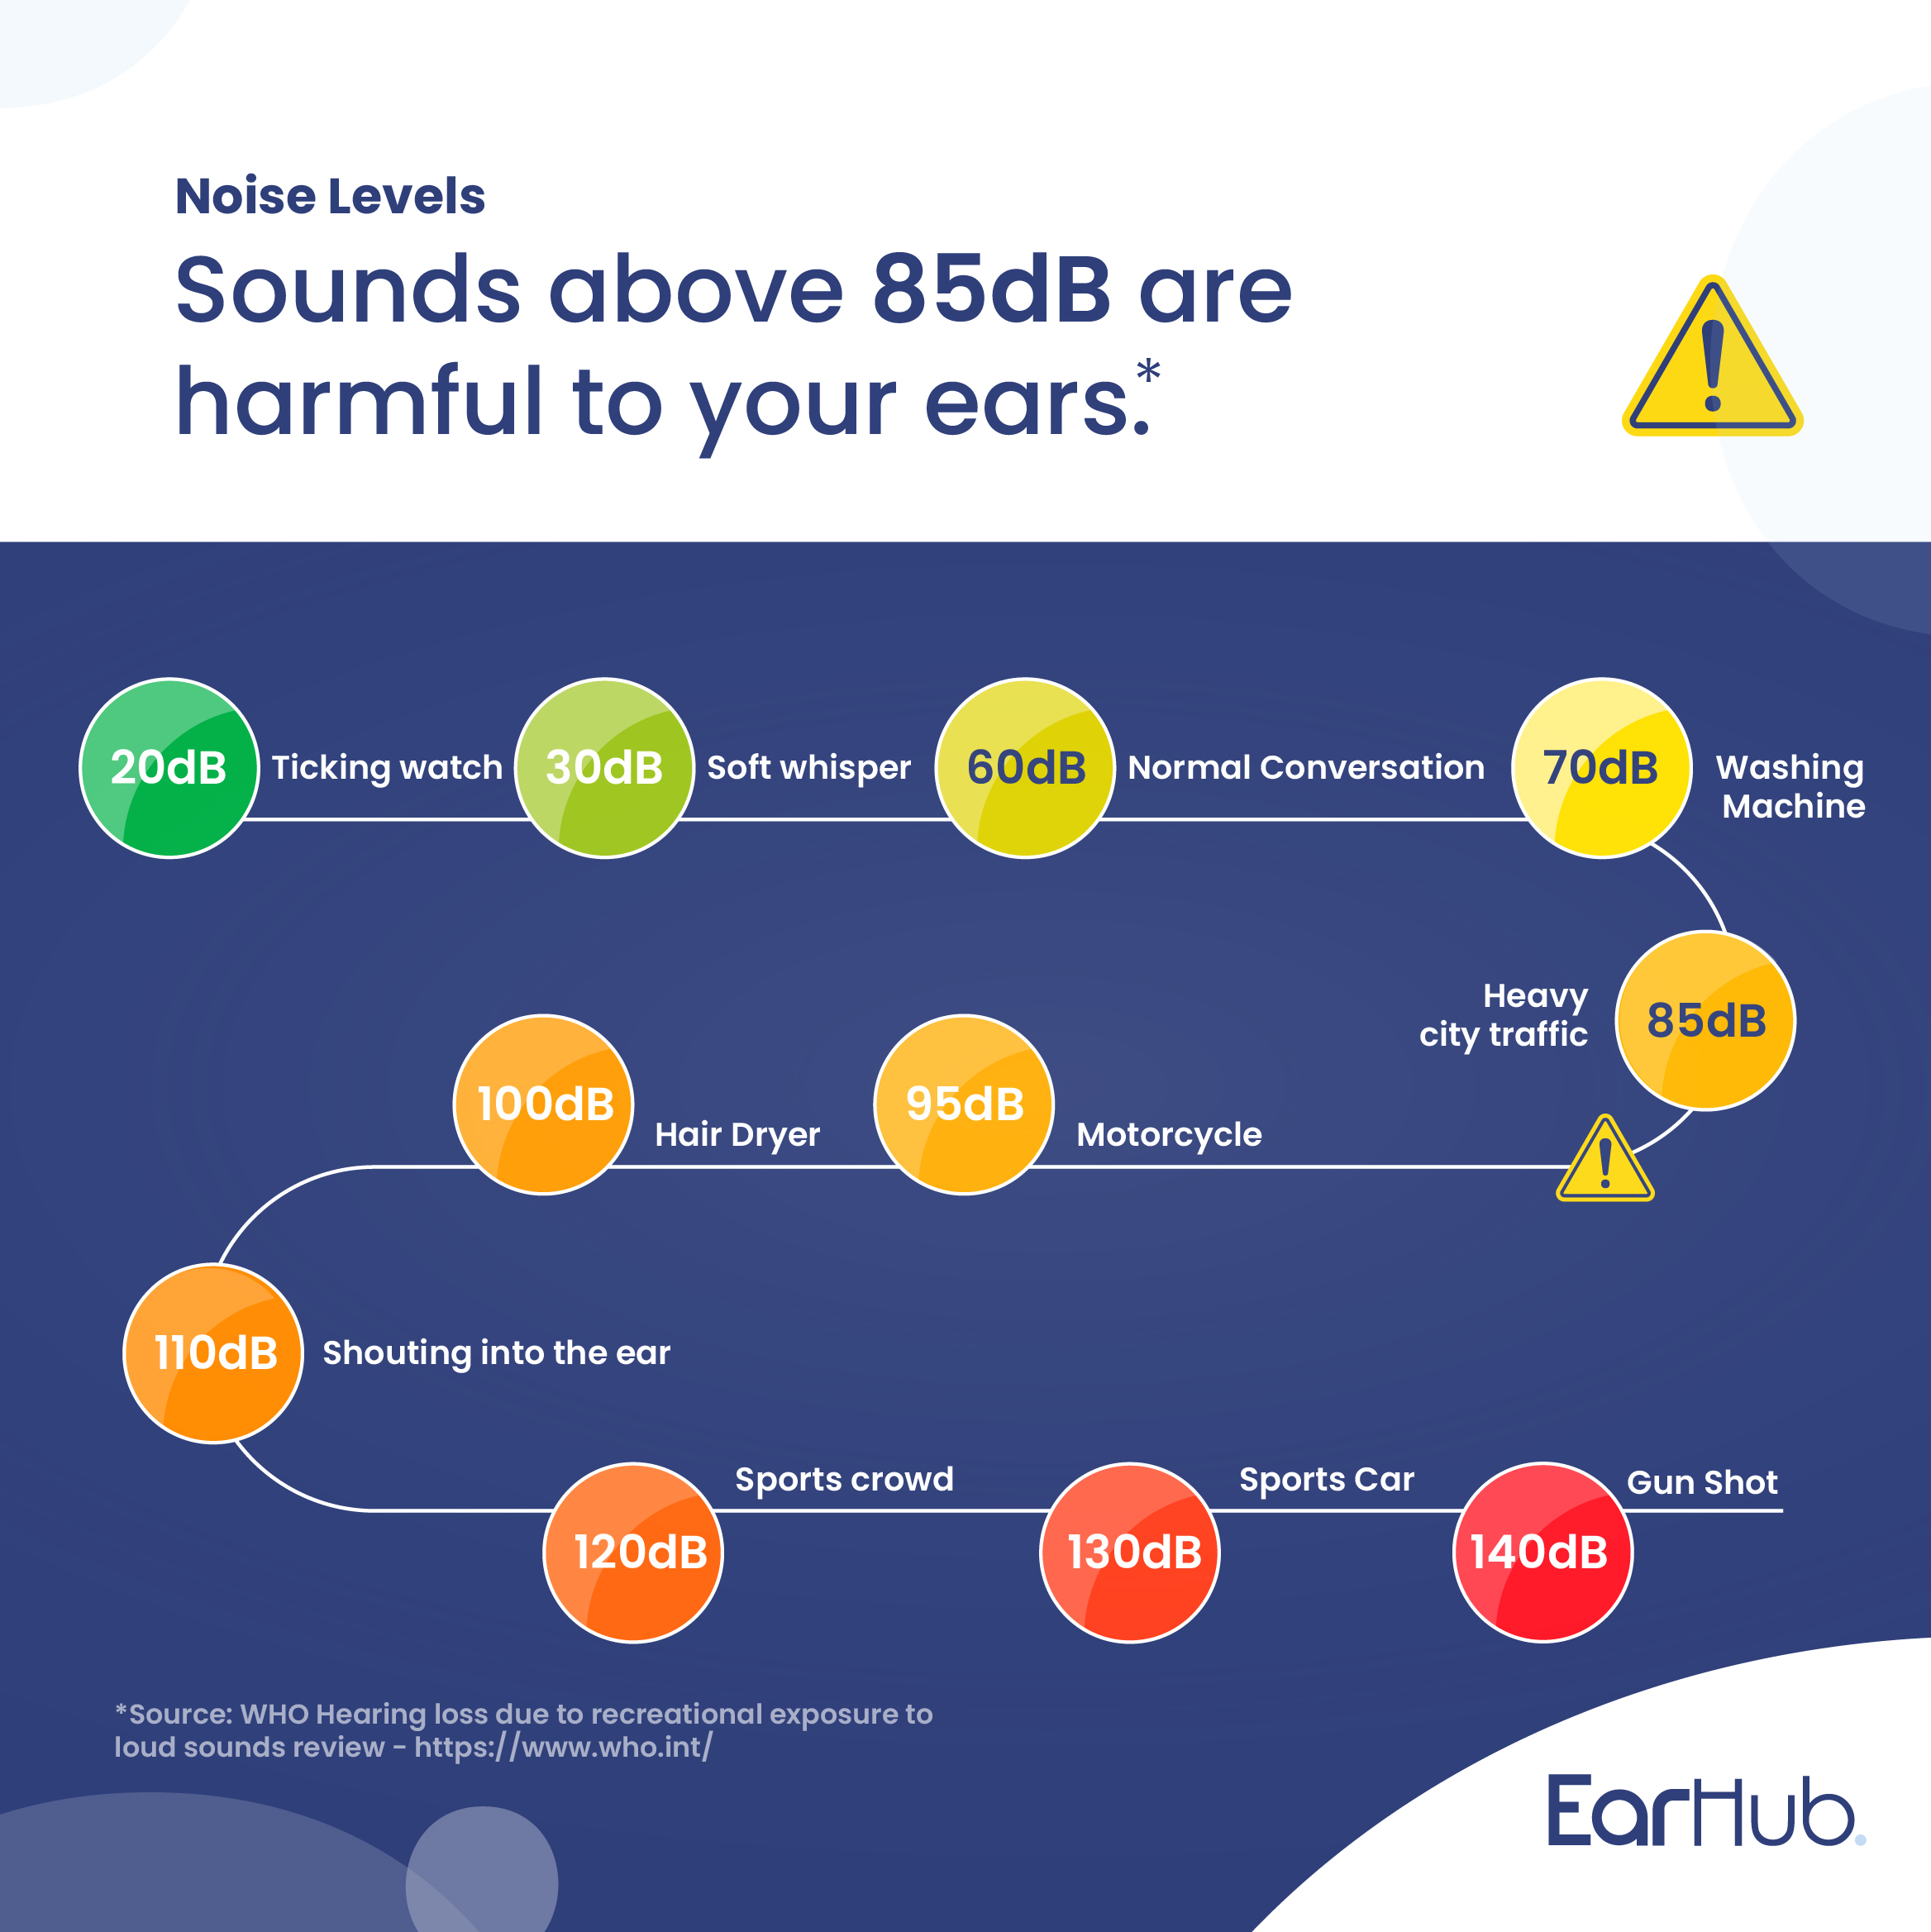 Some examples of common noises and their sound levels. Sounds above 85dB are harmful to your ears.